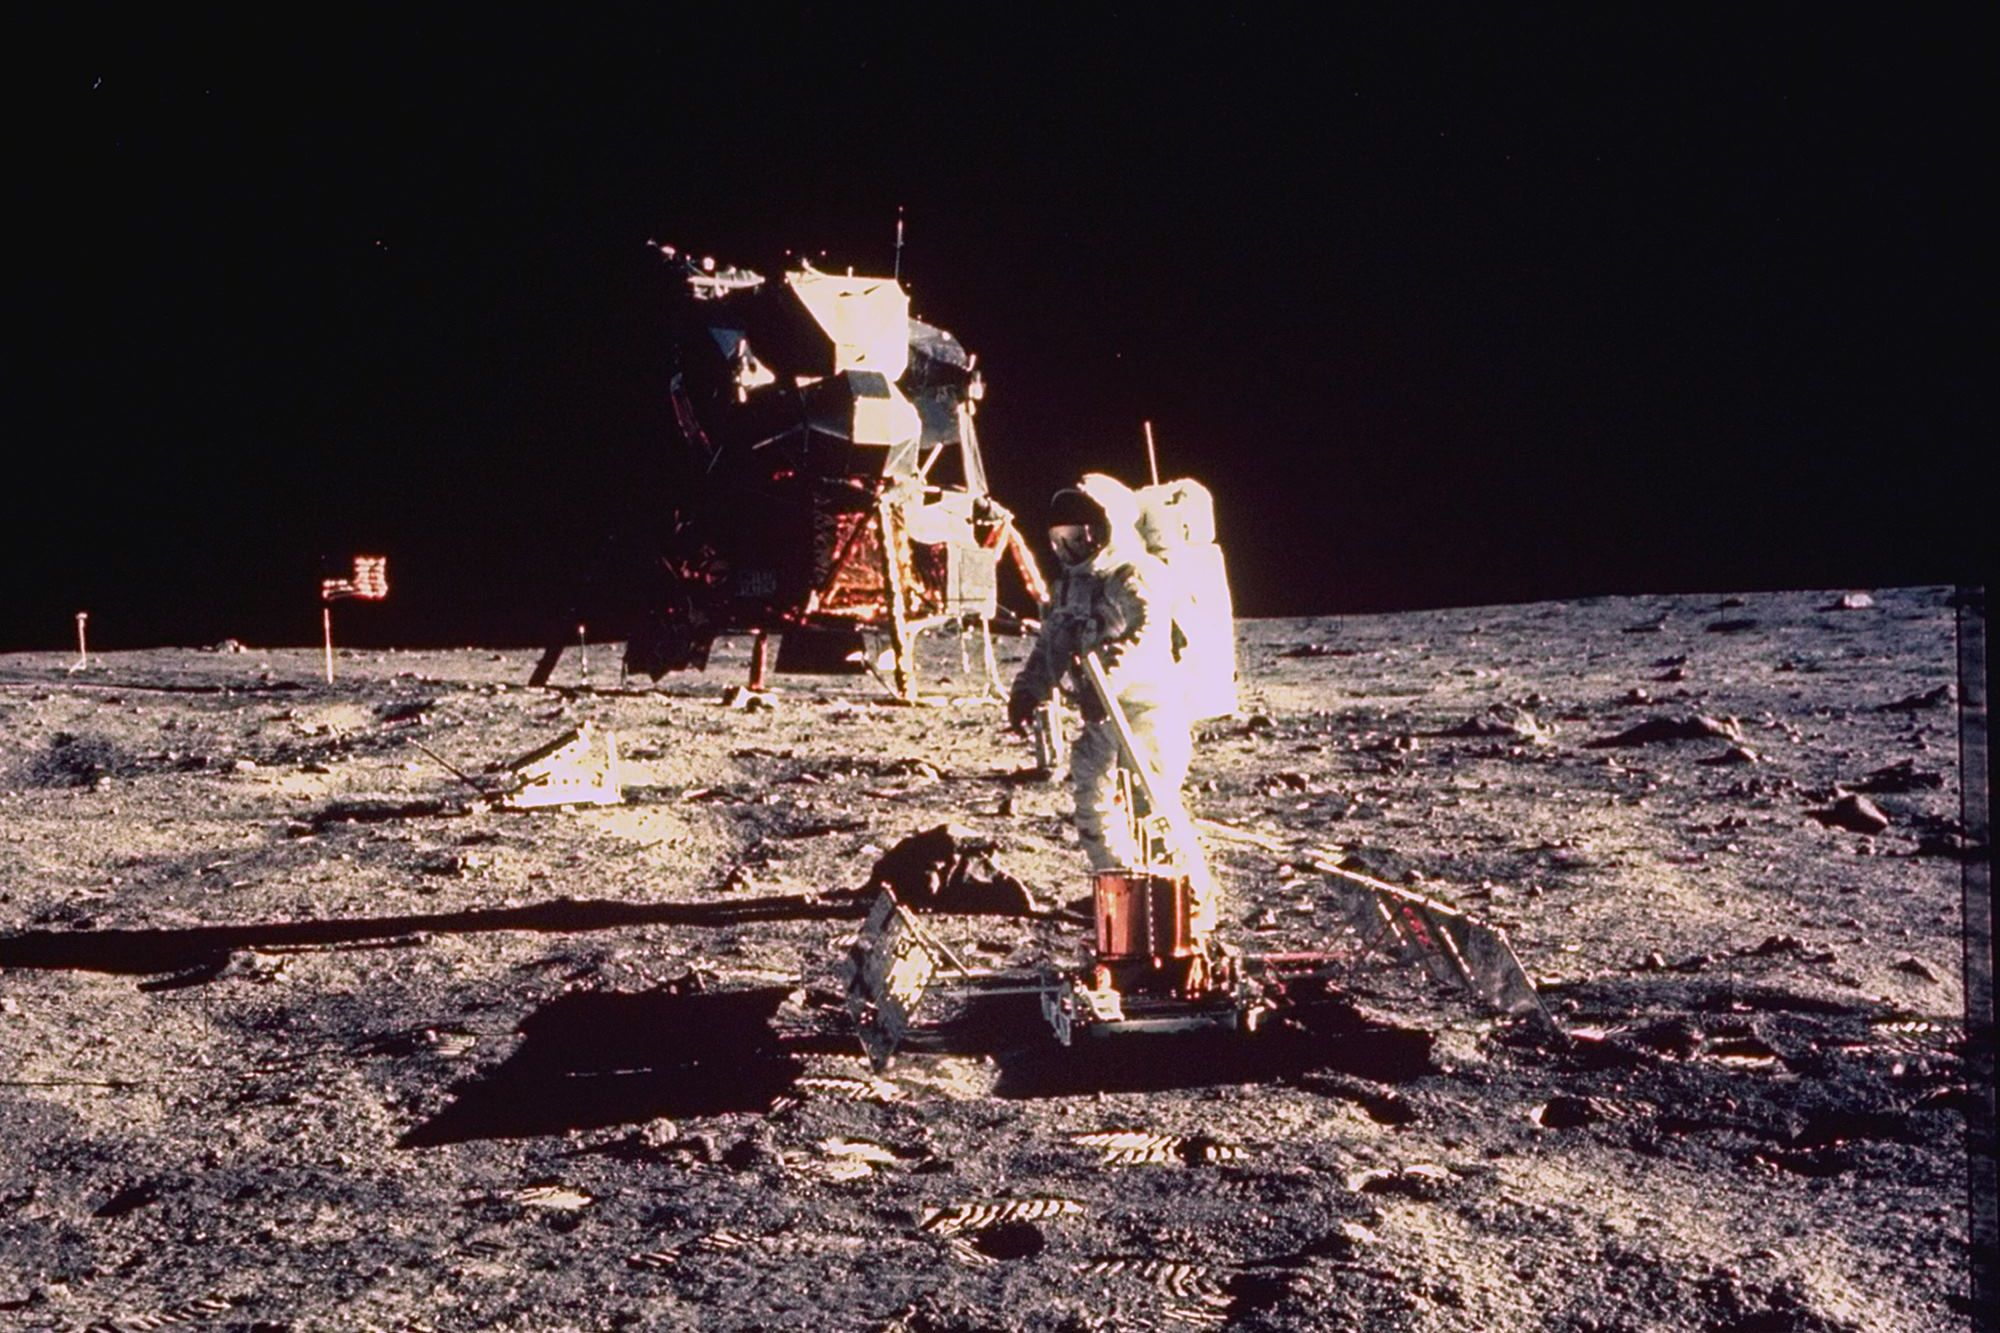 Want to Accomplish Your Own Moonshot? Look to These 'Apollo 11' Lessons.